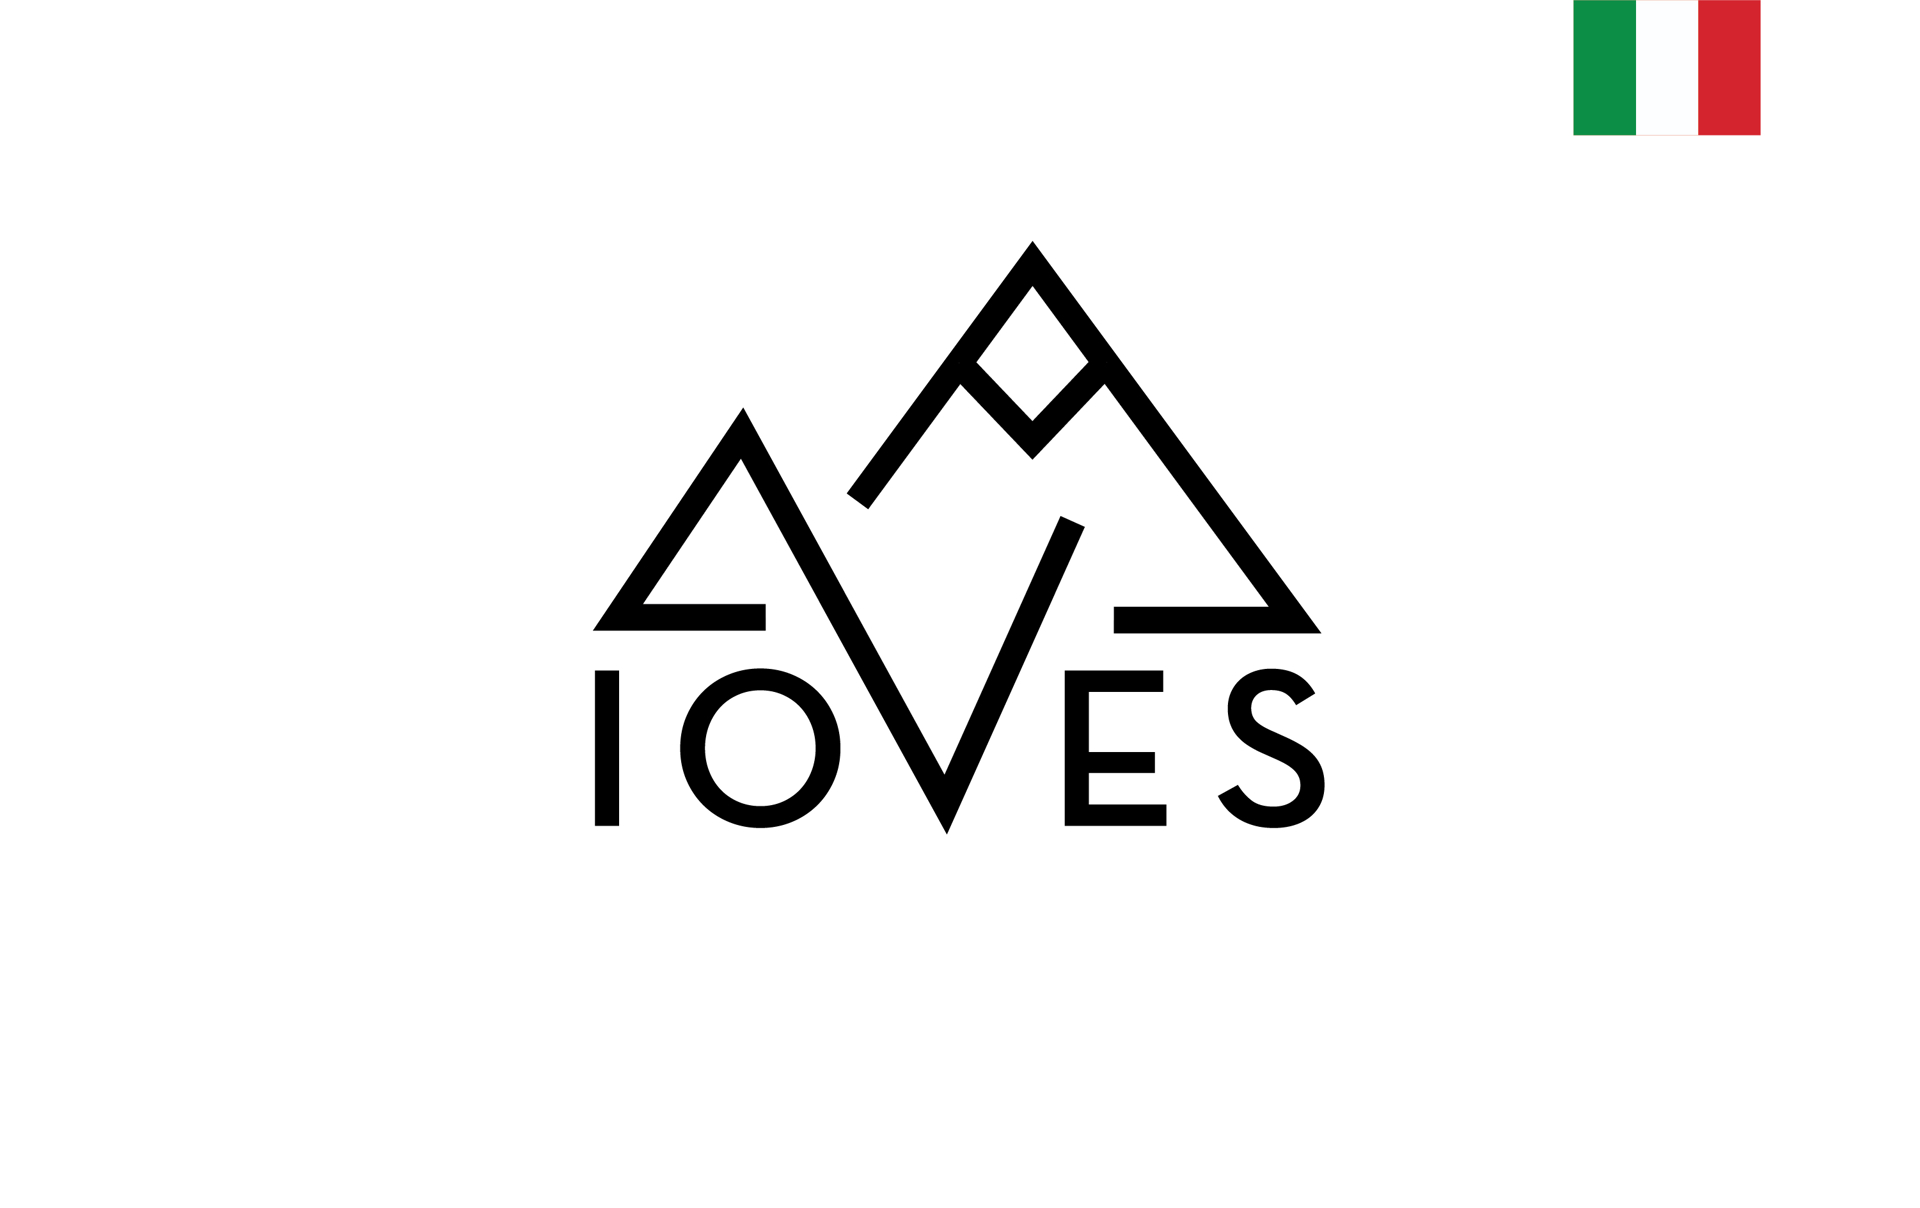 IOVES SPA - B2B Portal